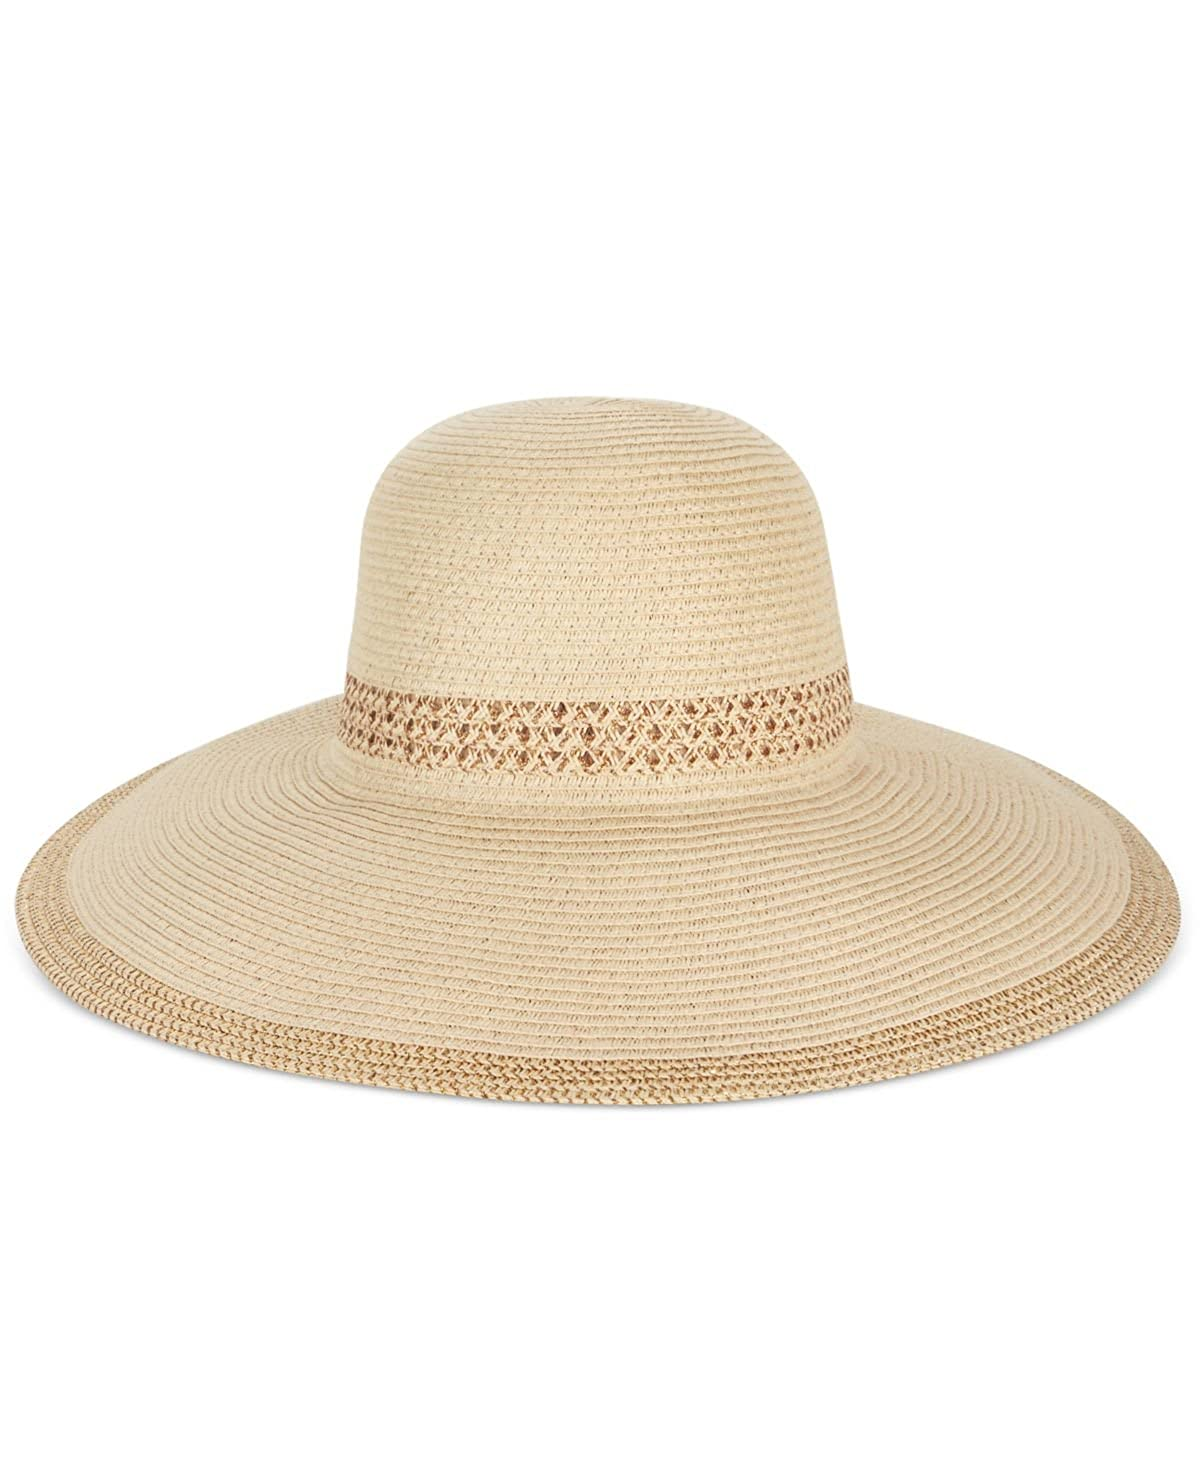 cf2485a98 AUGUST HAT COMPANY Gold Metallic Trim Floppy Sun Hat at Amazon ...